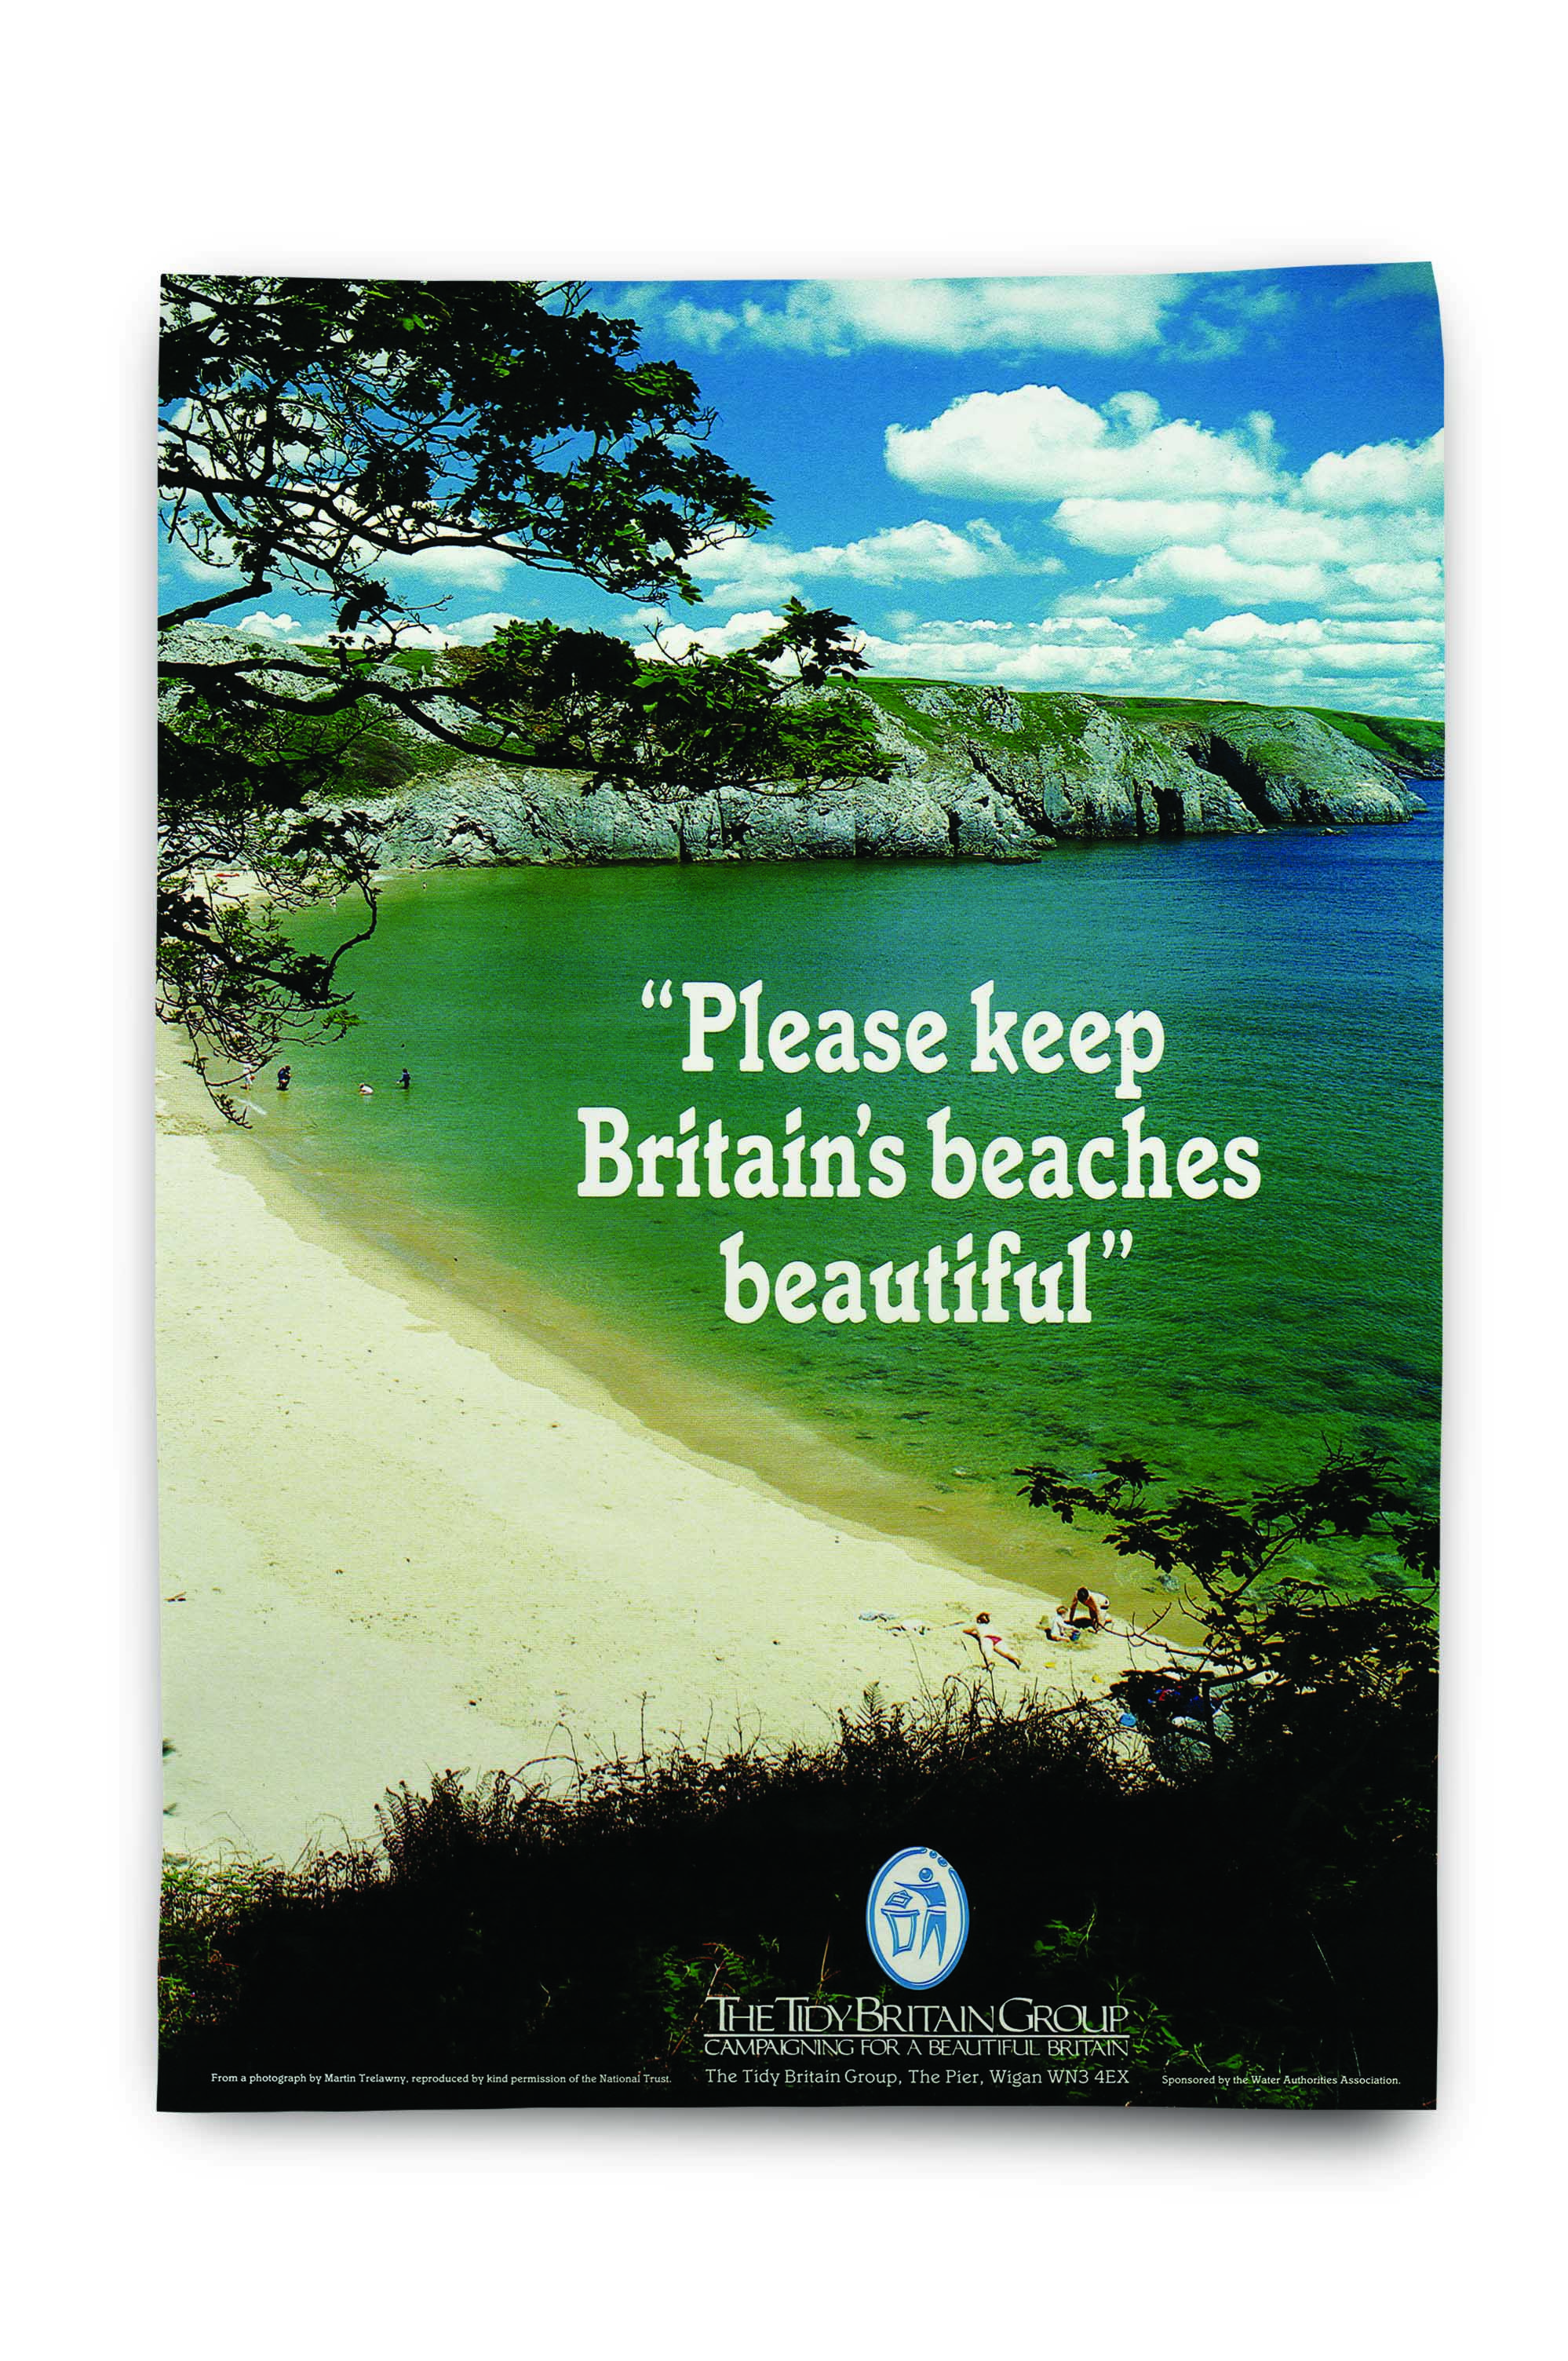 An image of a Blue Flag campaign poster by Keep Britain Tidy